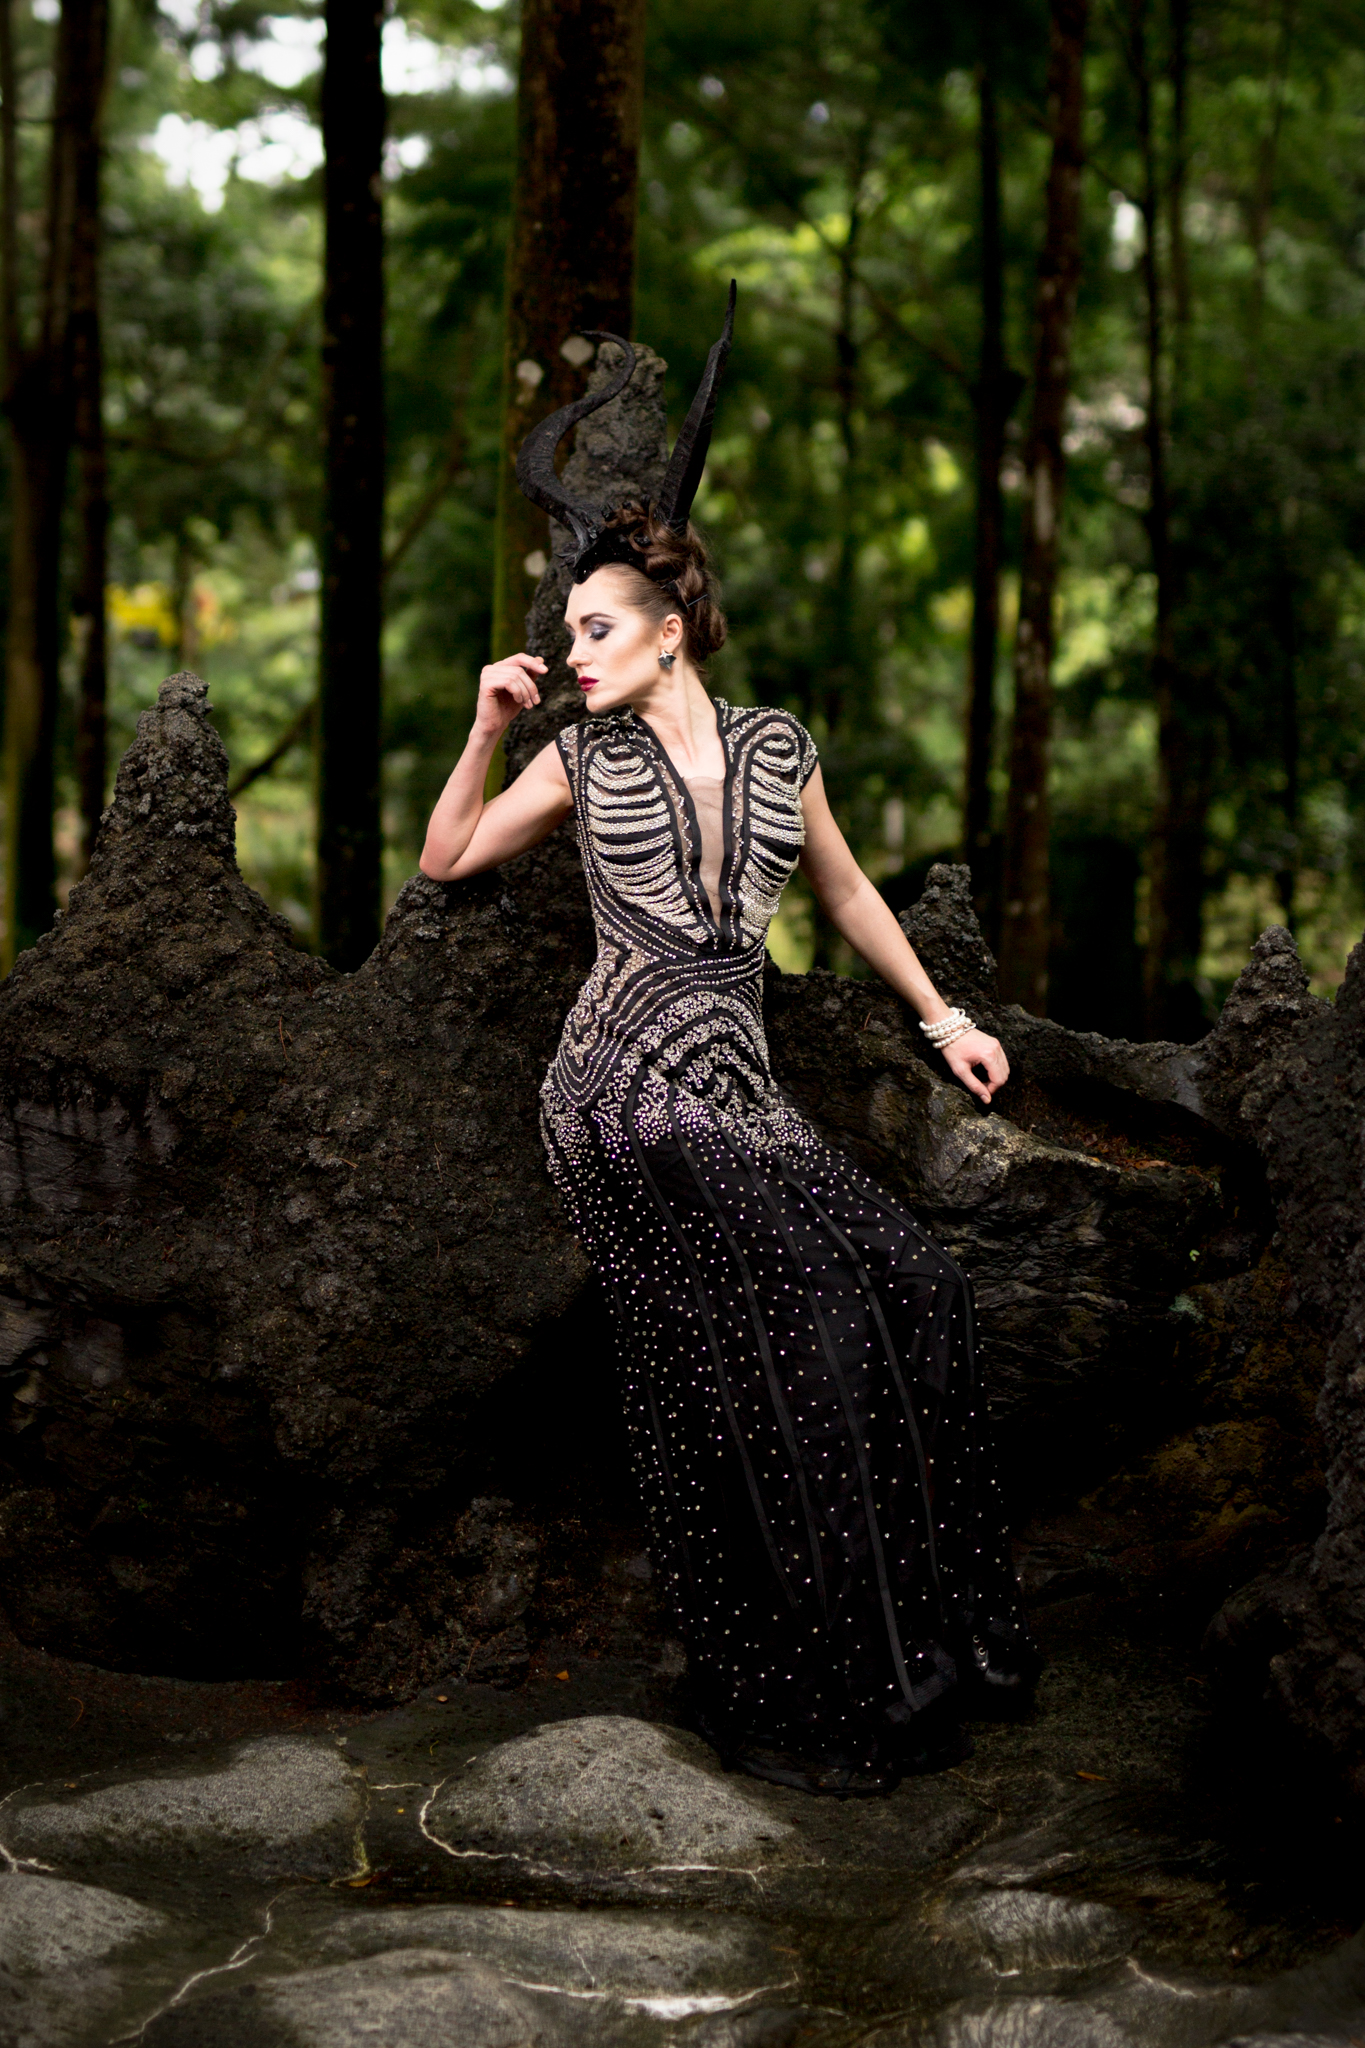 Corvis-Photography-makeup-Suzane-Calero-designer-Erwin-Lee-Tan-horns-Patrick-Starr-Isorena-accessories-Vhee-Co